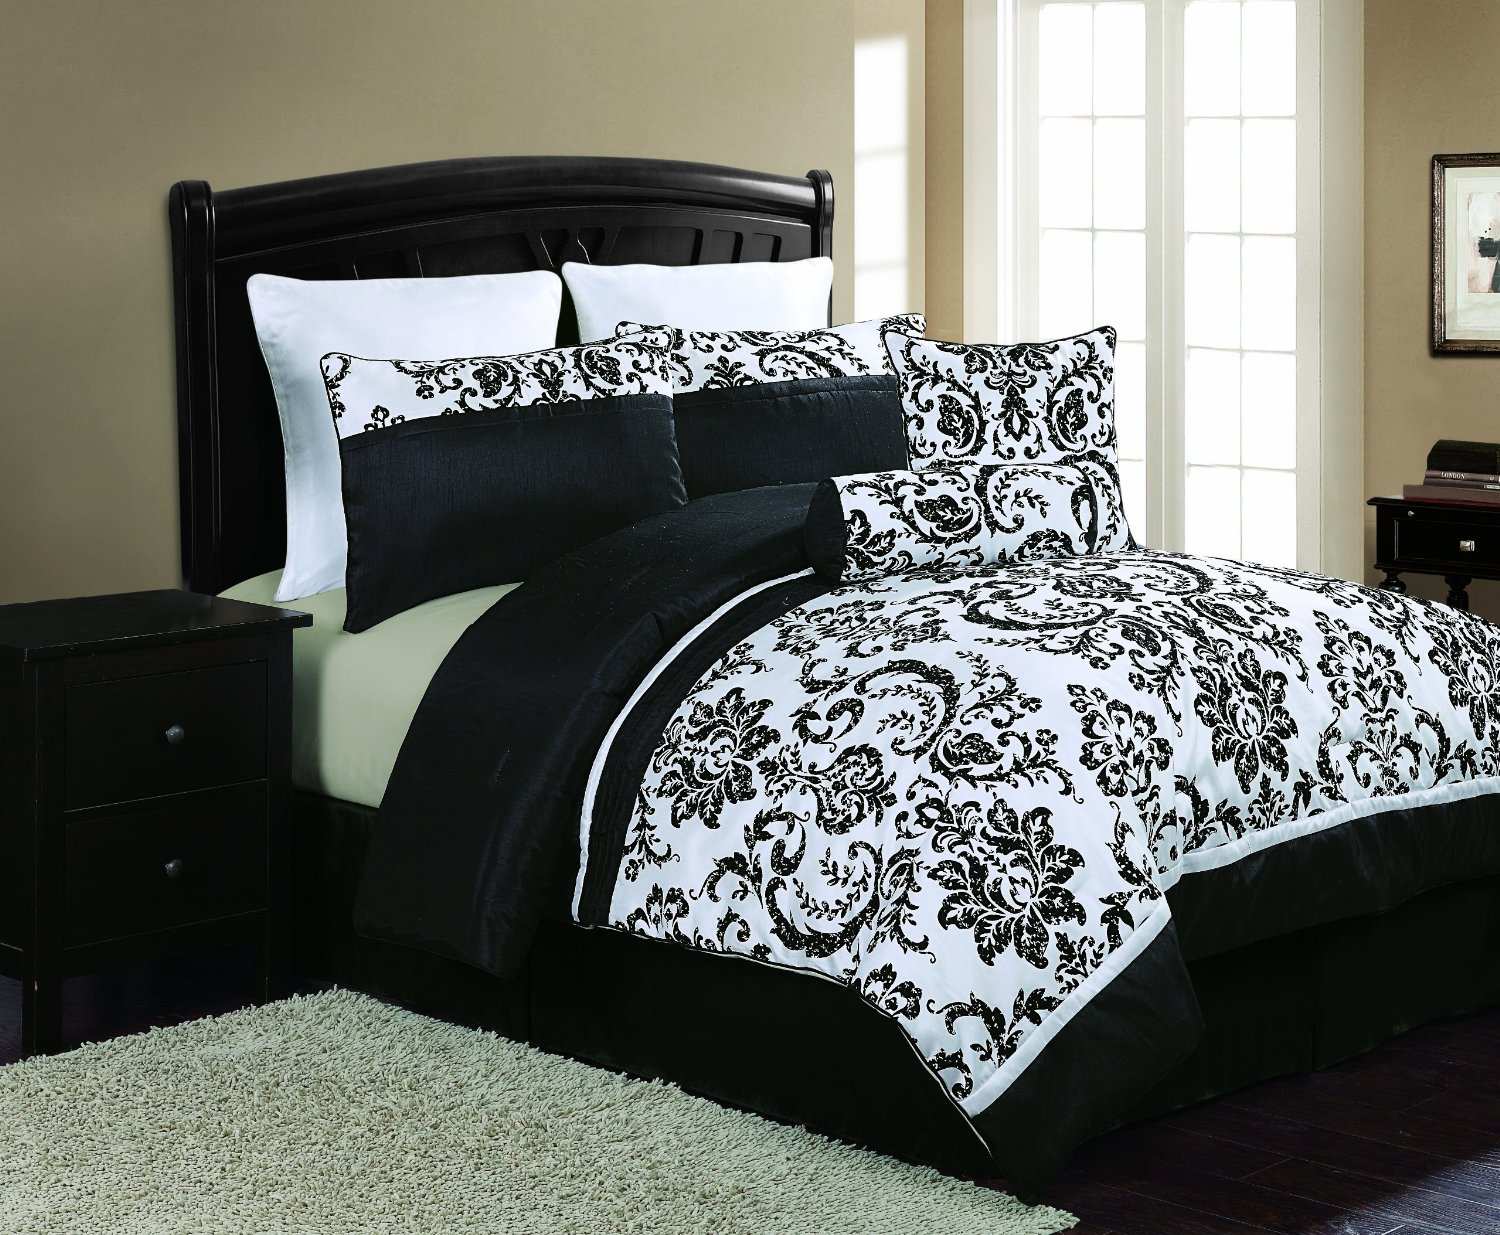 Amazing Bedroom with black and white comforter sets and laminate porcelain floor also curtain and sidetables